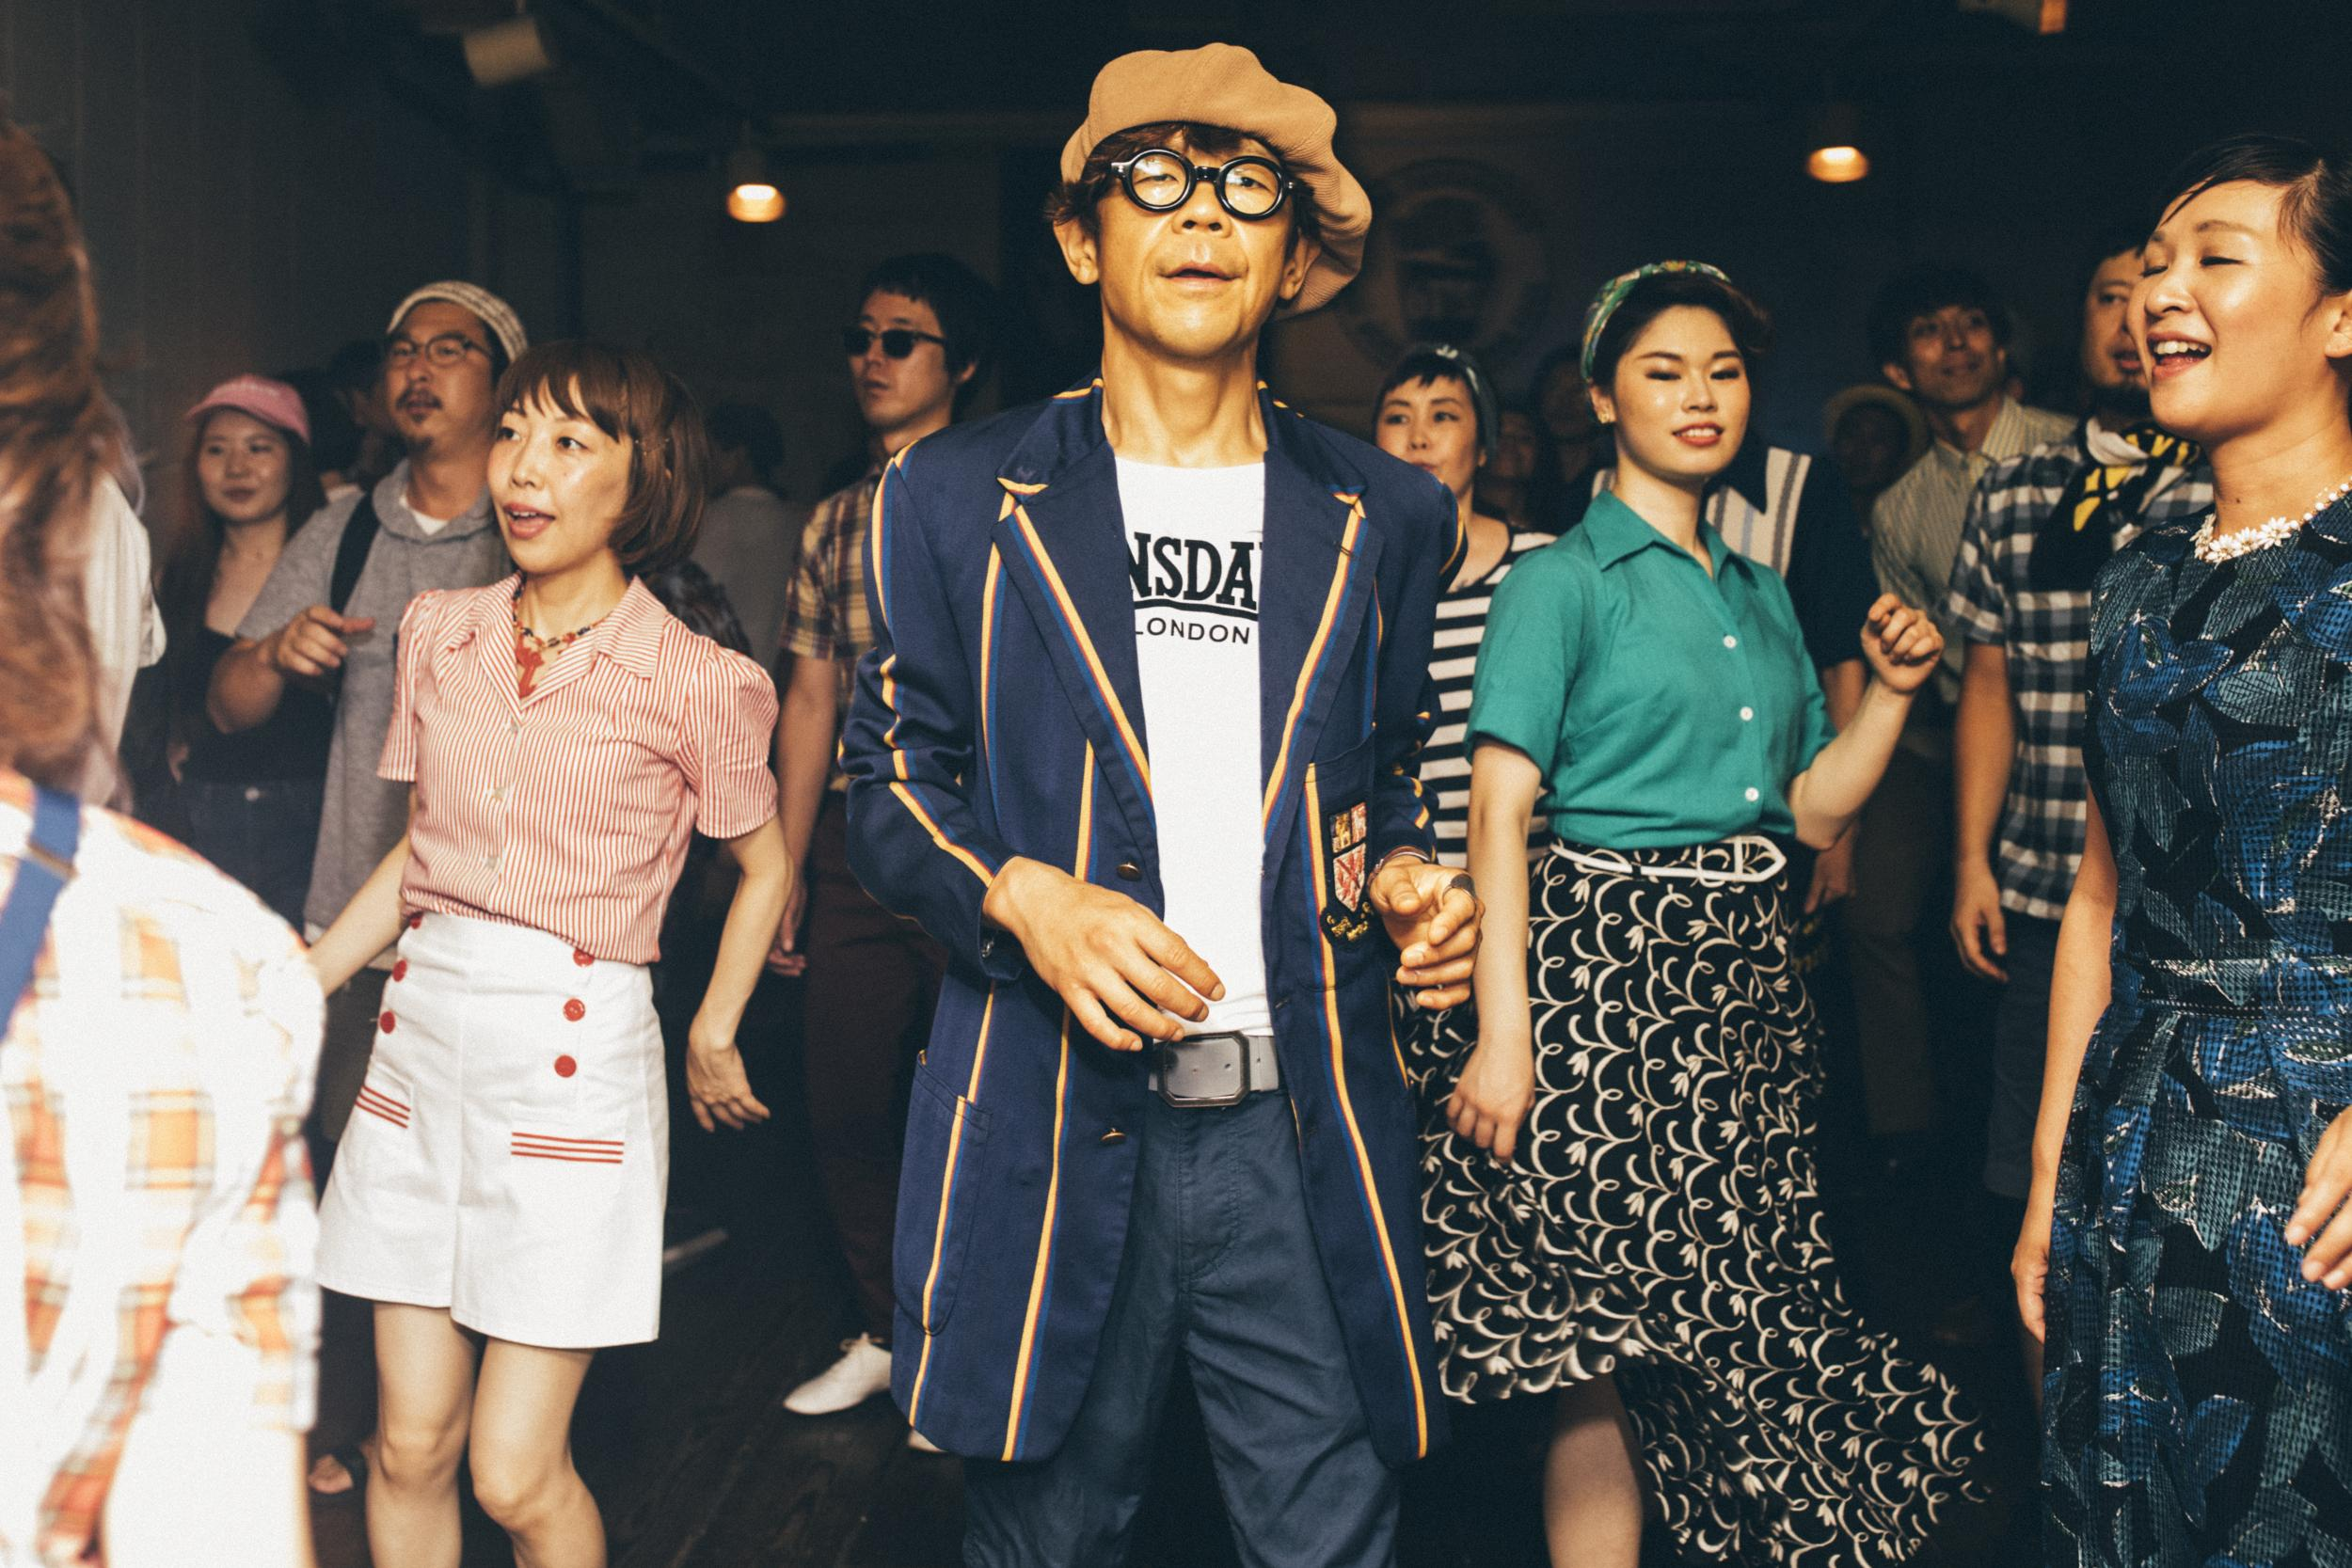 Inside japans northern soul movement where uks retro music rules